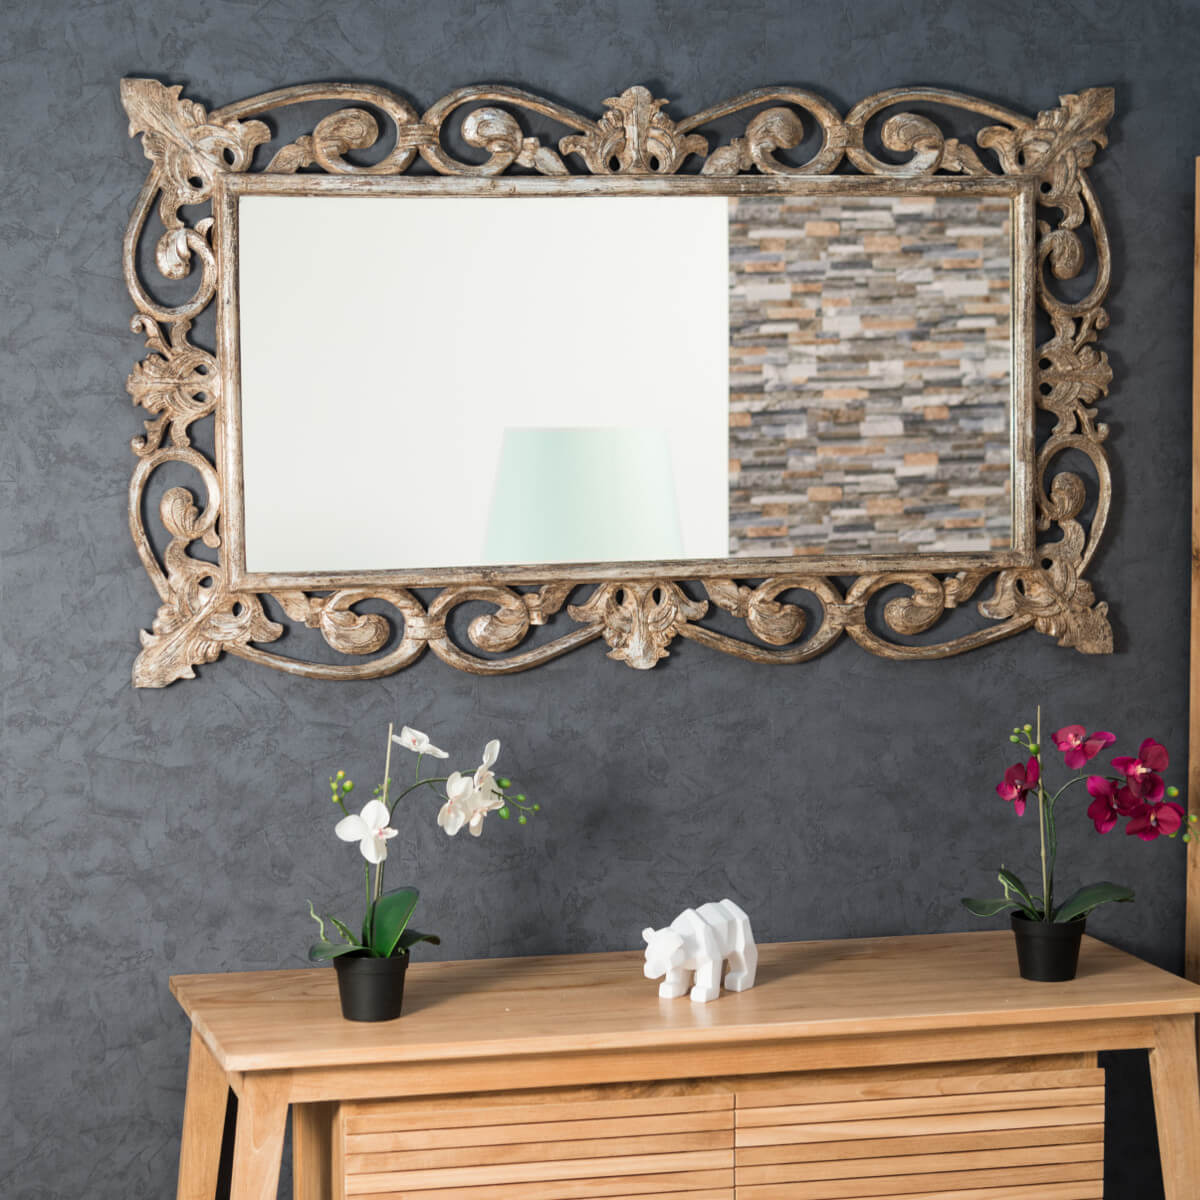 Miroir cordoue en bois patin bronze 140x80 for Miroir 130 x 80